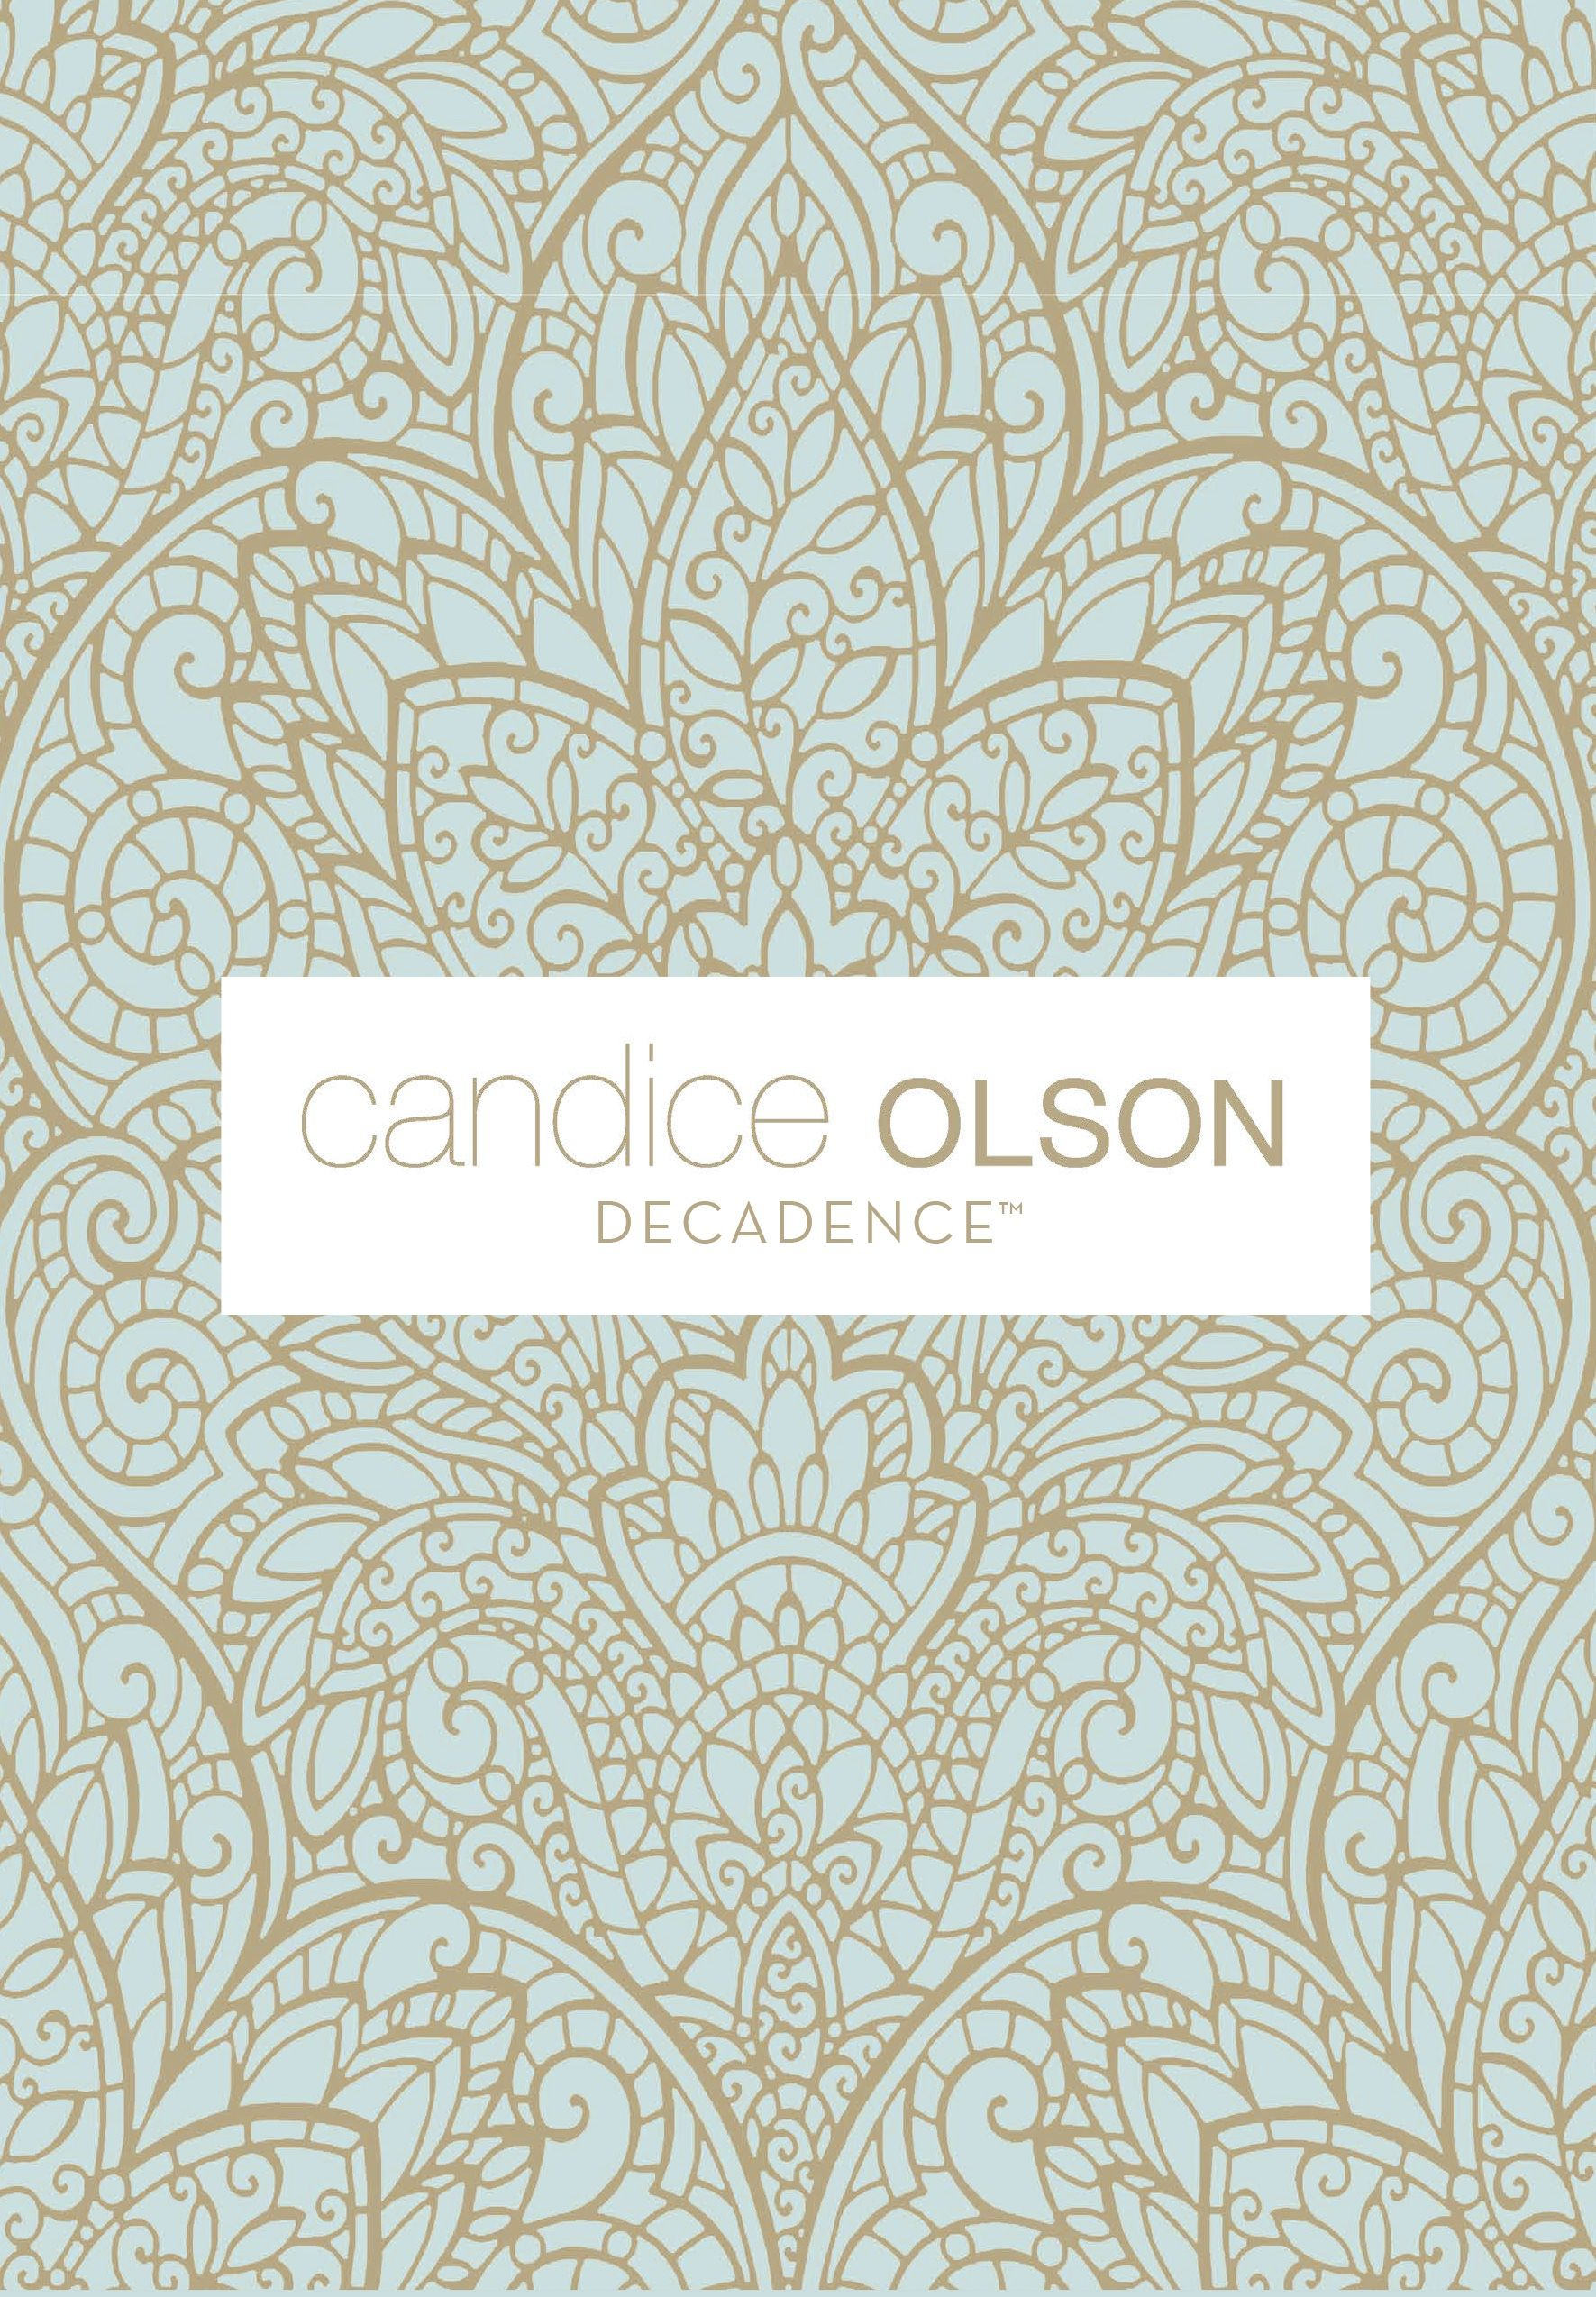 My New Candice Olson Wallpaper Book Decadence Is Full Of Lovely Wall Coverings That Interior Design Candice Olson Candice Olson Wallpaper Powder Room Wallpaper